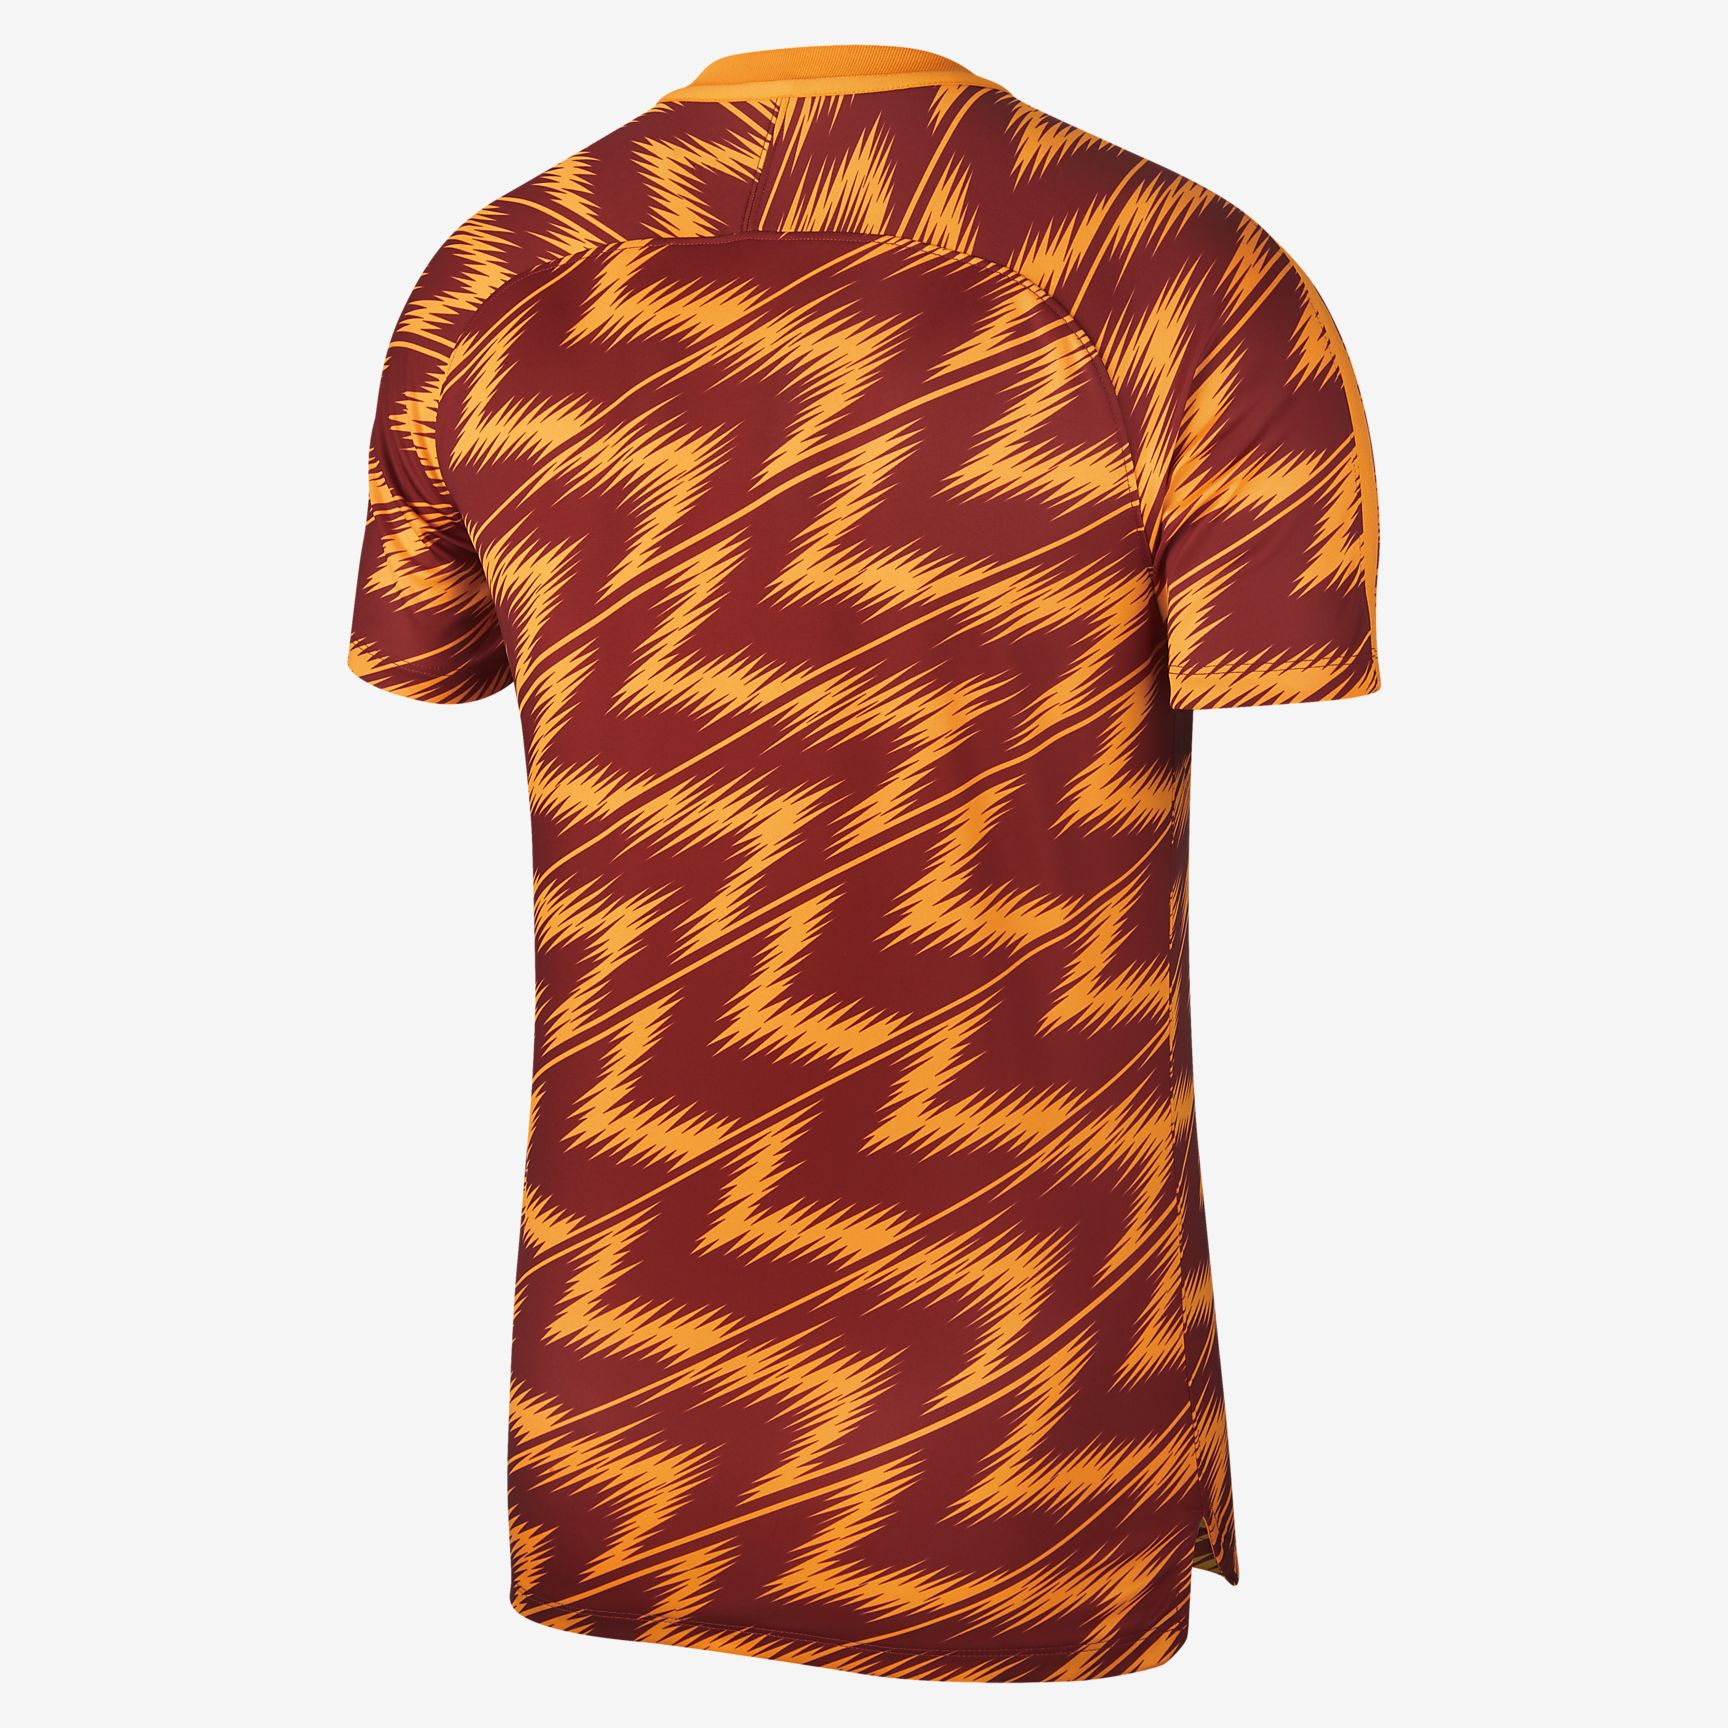 https://c.static-nike.com/a/images/t_PDP_1728_v1/f_auto/sqhlaa0r6p1wvbzahgjm/galatasaray-sk-dri-fit-squad-football-top-j4kxf9.jpg